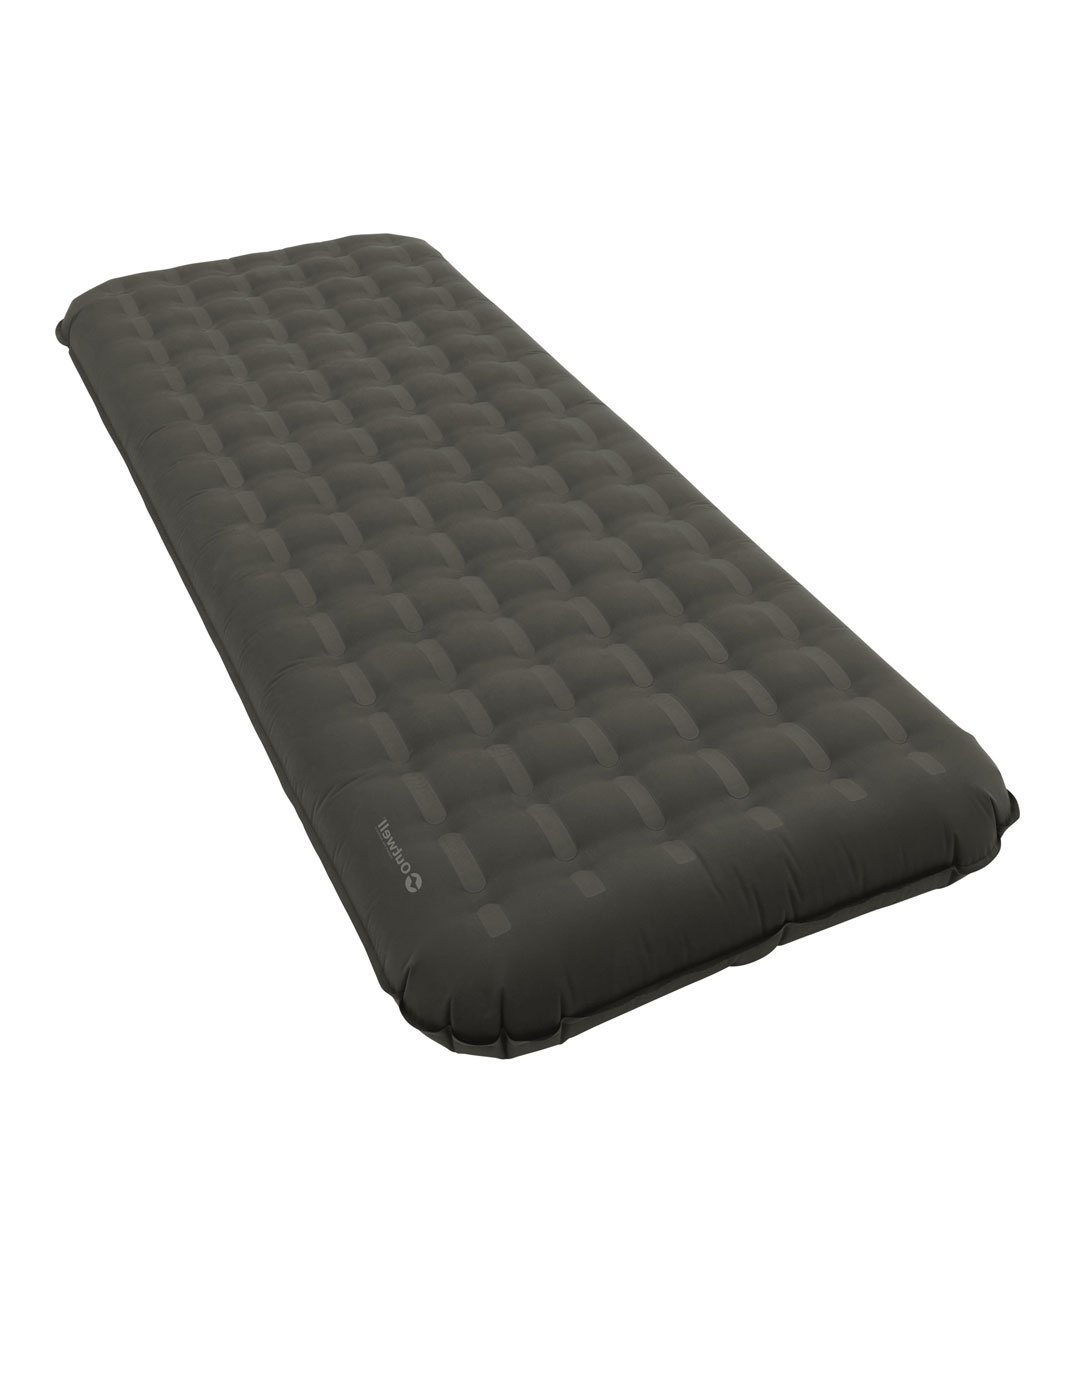 Outwell Flow Airbed Single Luftbett, Grau, 200 x 80 x 20 cm